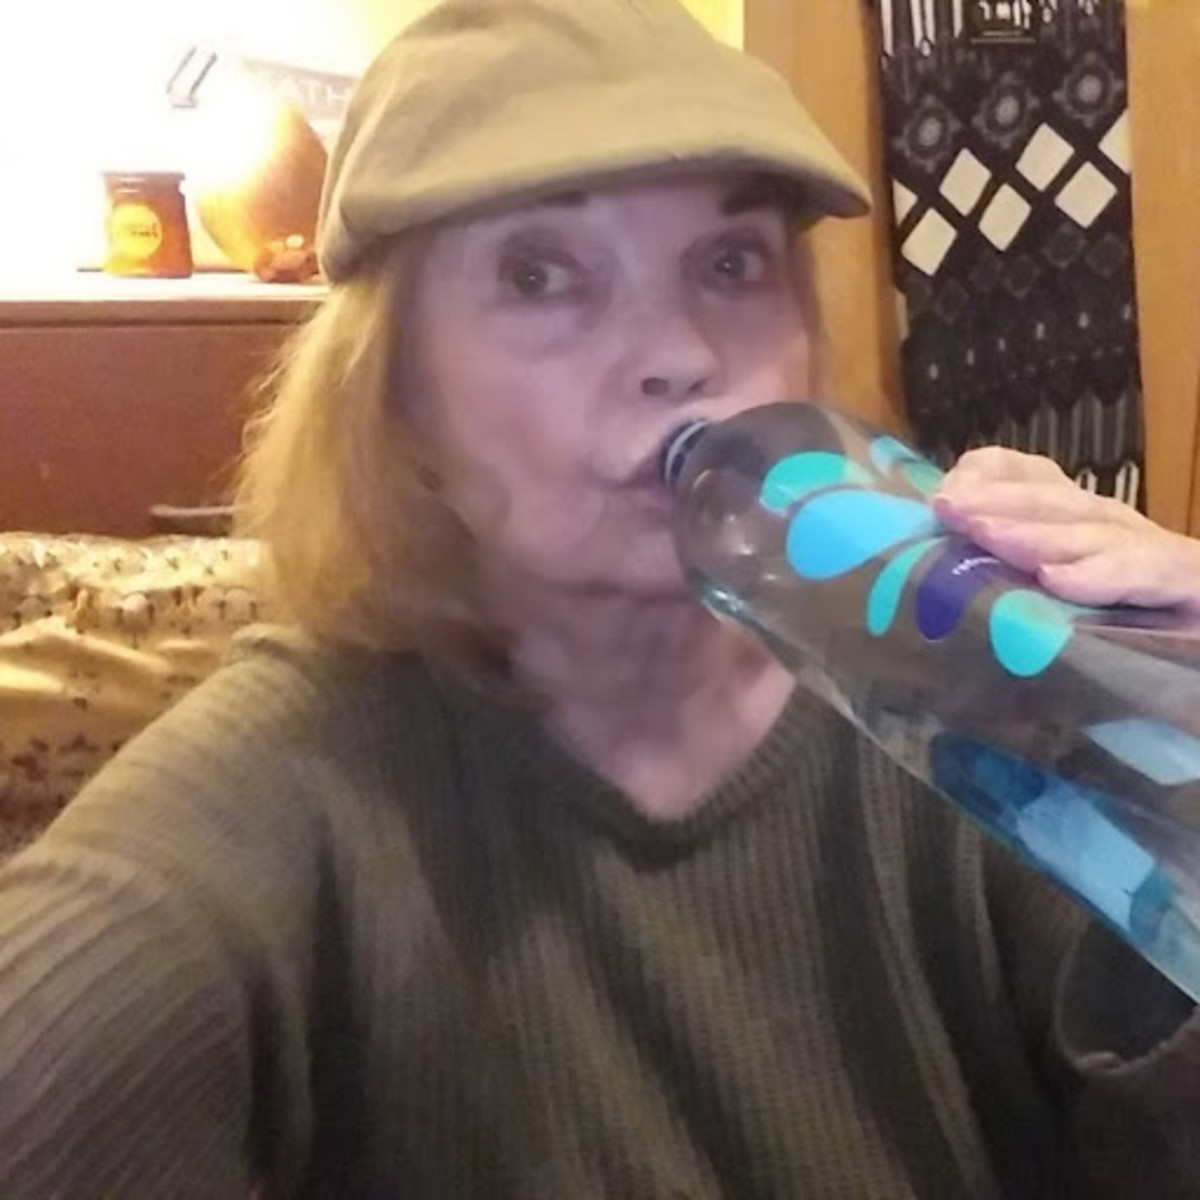 Sipping room-temperature water during my rehearsal.